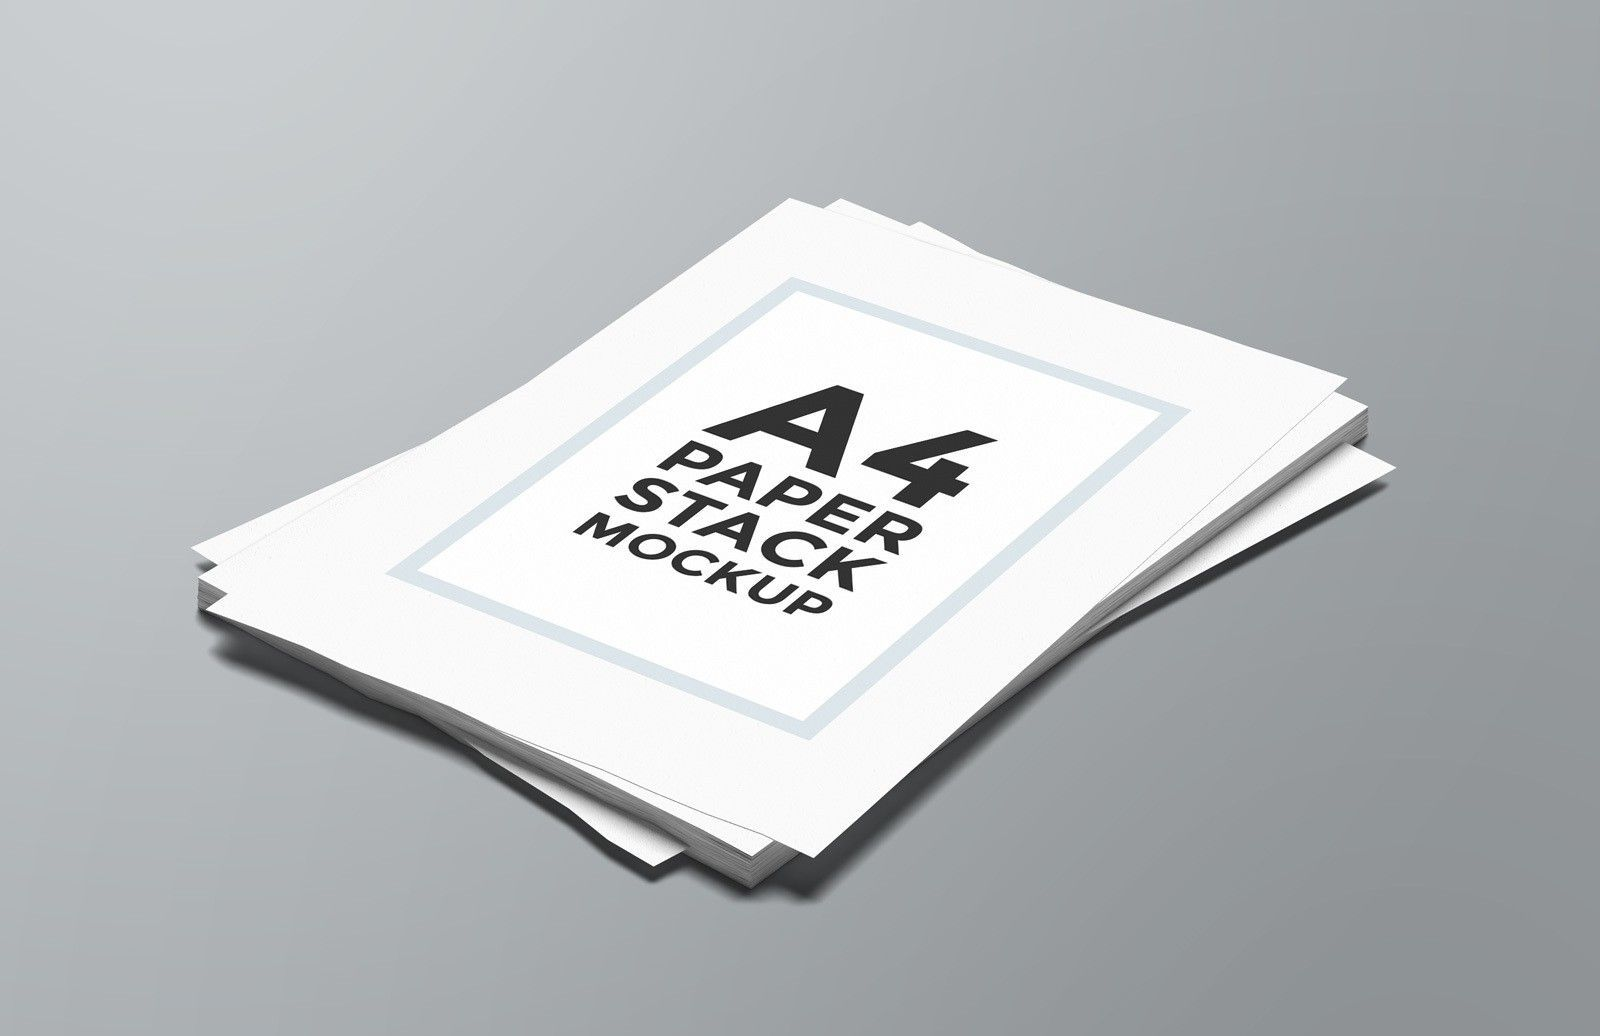 This Realistic A4 Paper Stack Mockup For Photoshop Is Ideal To Display Any Kind Of Printed Material That You Want To Sh A4 Paper Portfolio Design Layout Paper